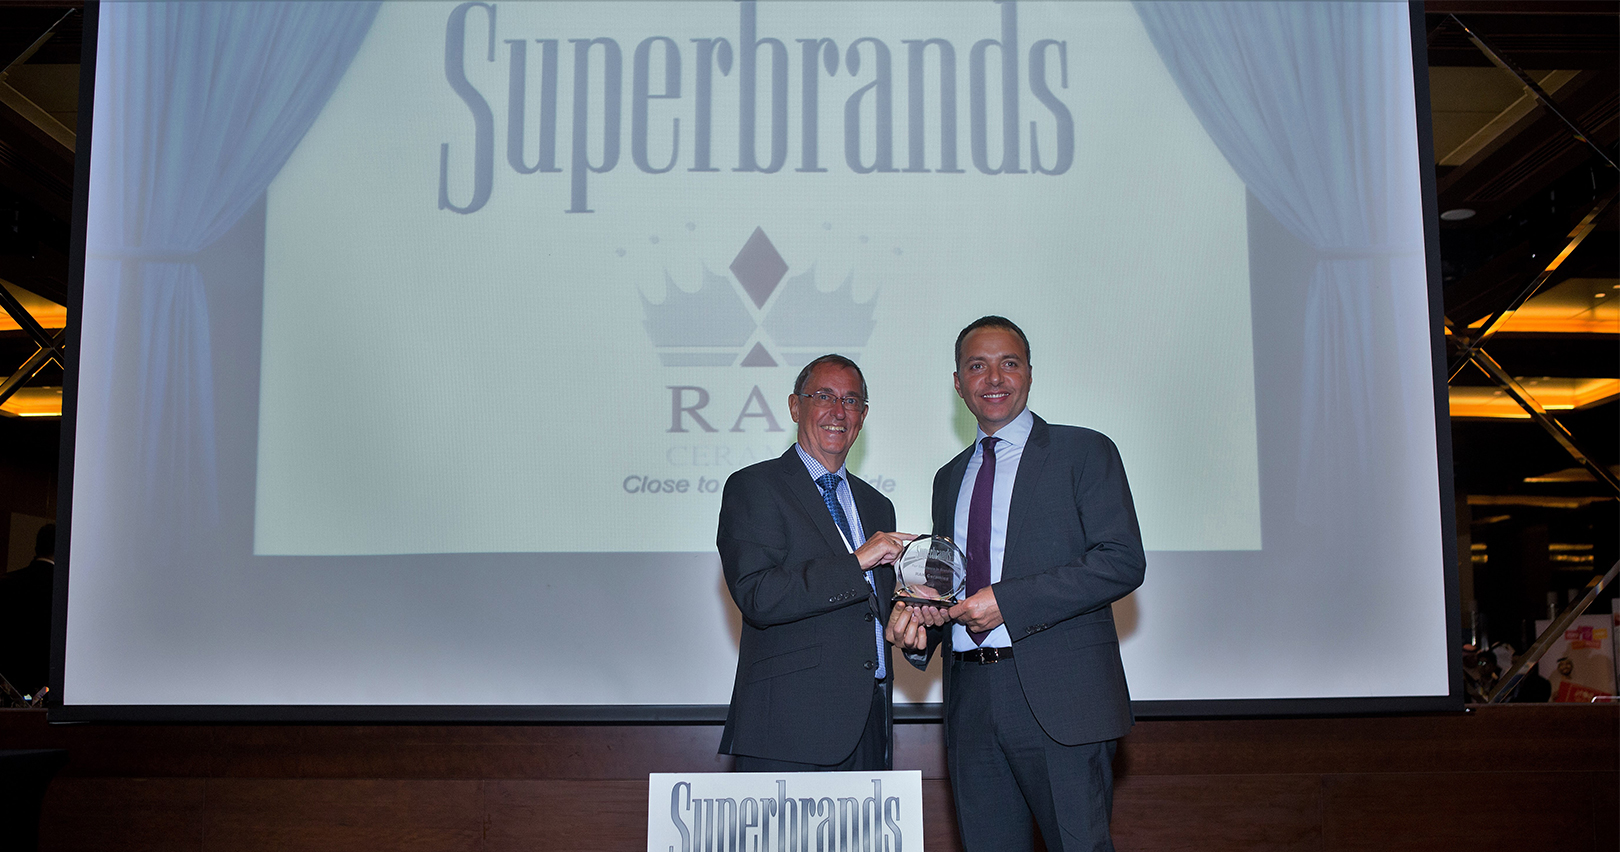 RAK Ceramics voted as a Superbrand for the seventh consecutive year